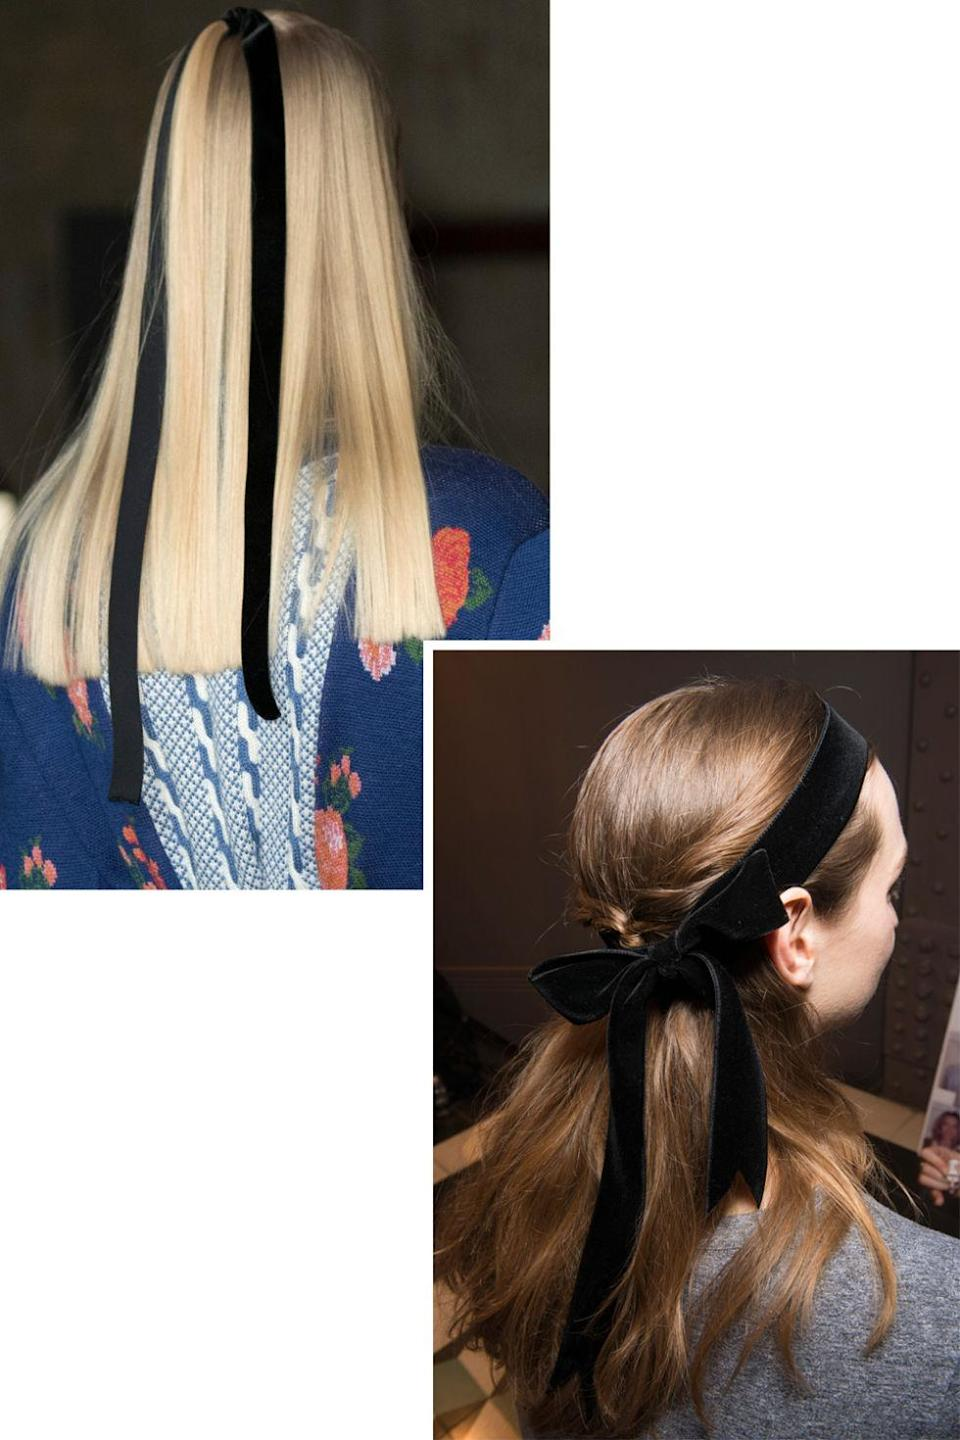 <p>The black ribbon trend seen at Tory Burch and Marchesa has gone international. At Emilia Wickstead, hair was pulled into a small half-up section and then secured with a black ribbon. At Temperley London, velvet hair bows complemented small black ribbons tied delicately around the neck.</p>